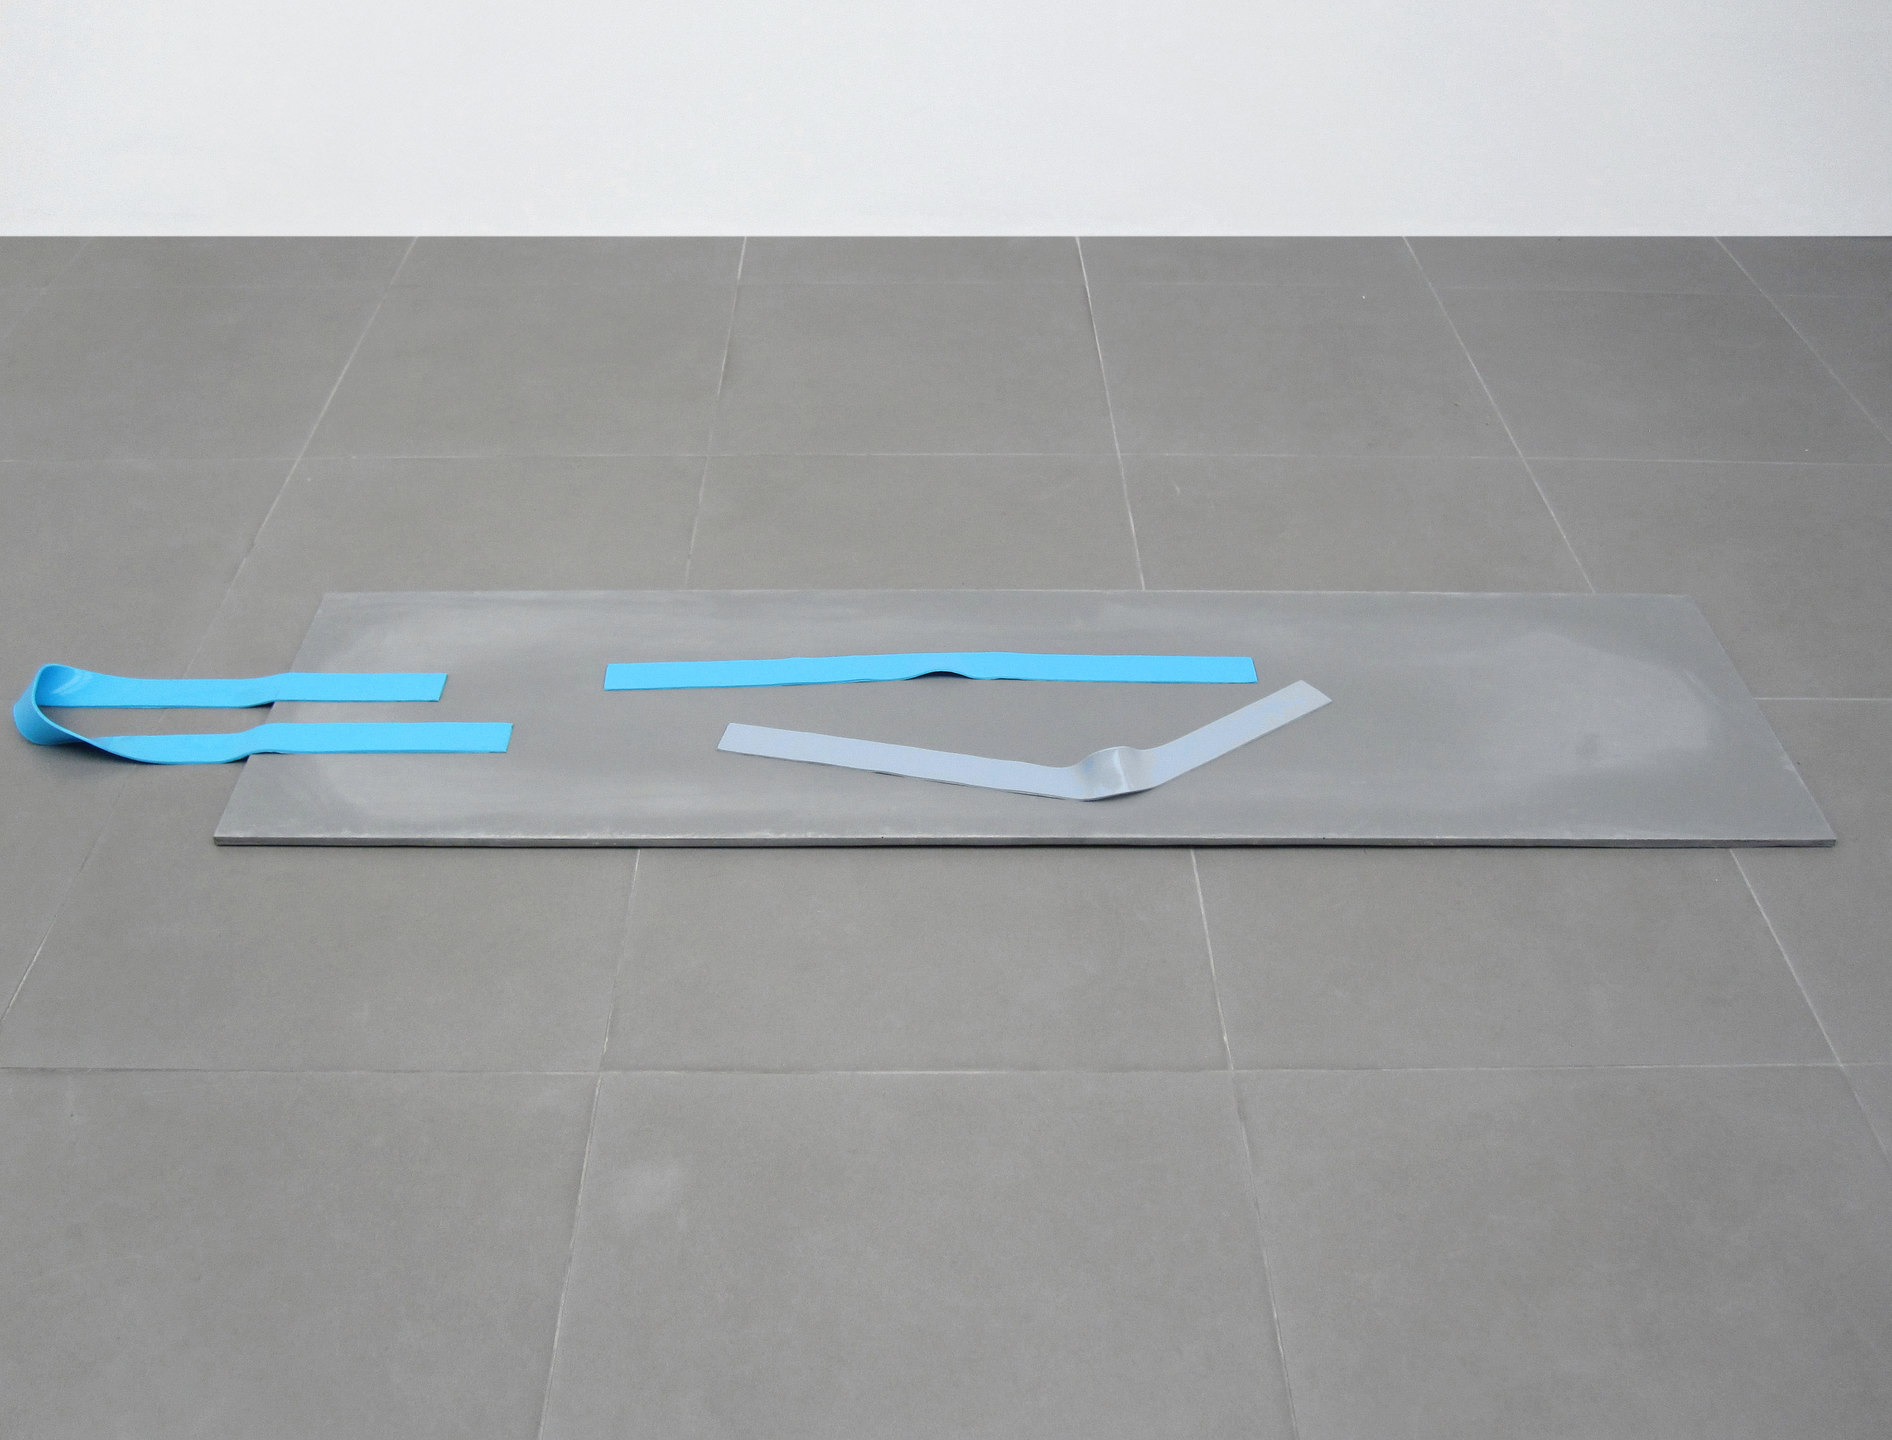 Magali Reus, Short Supplies, 2010, Jesmonite, silicone rubber, pigments, (180x50 cm, 70.9x19.7 ins), Cell Project Space